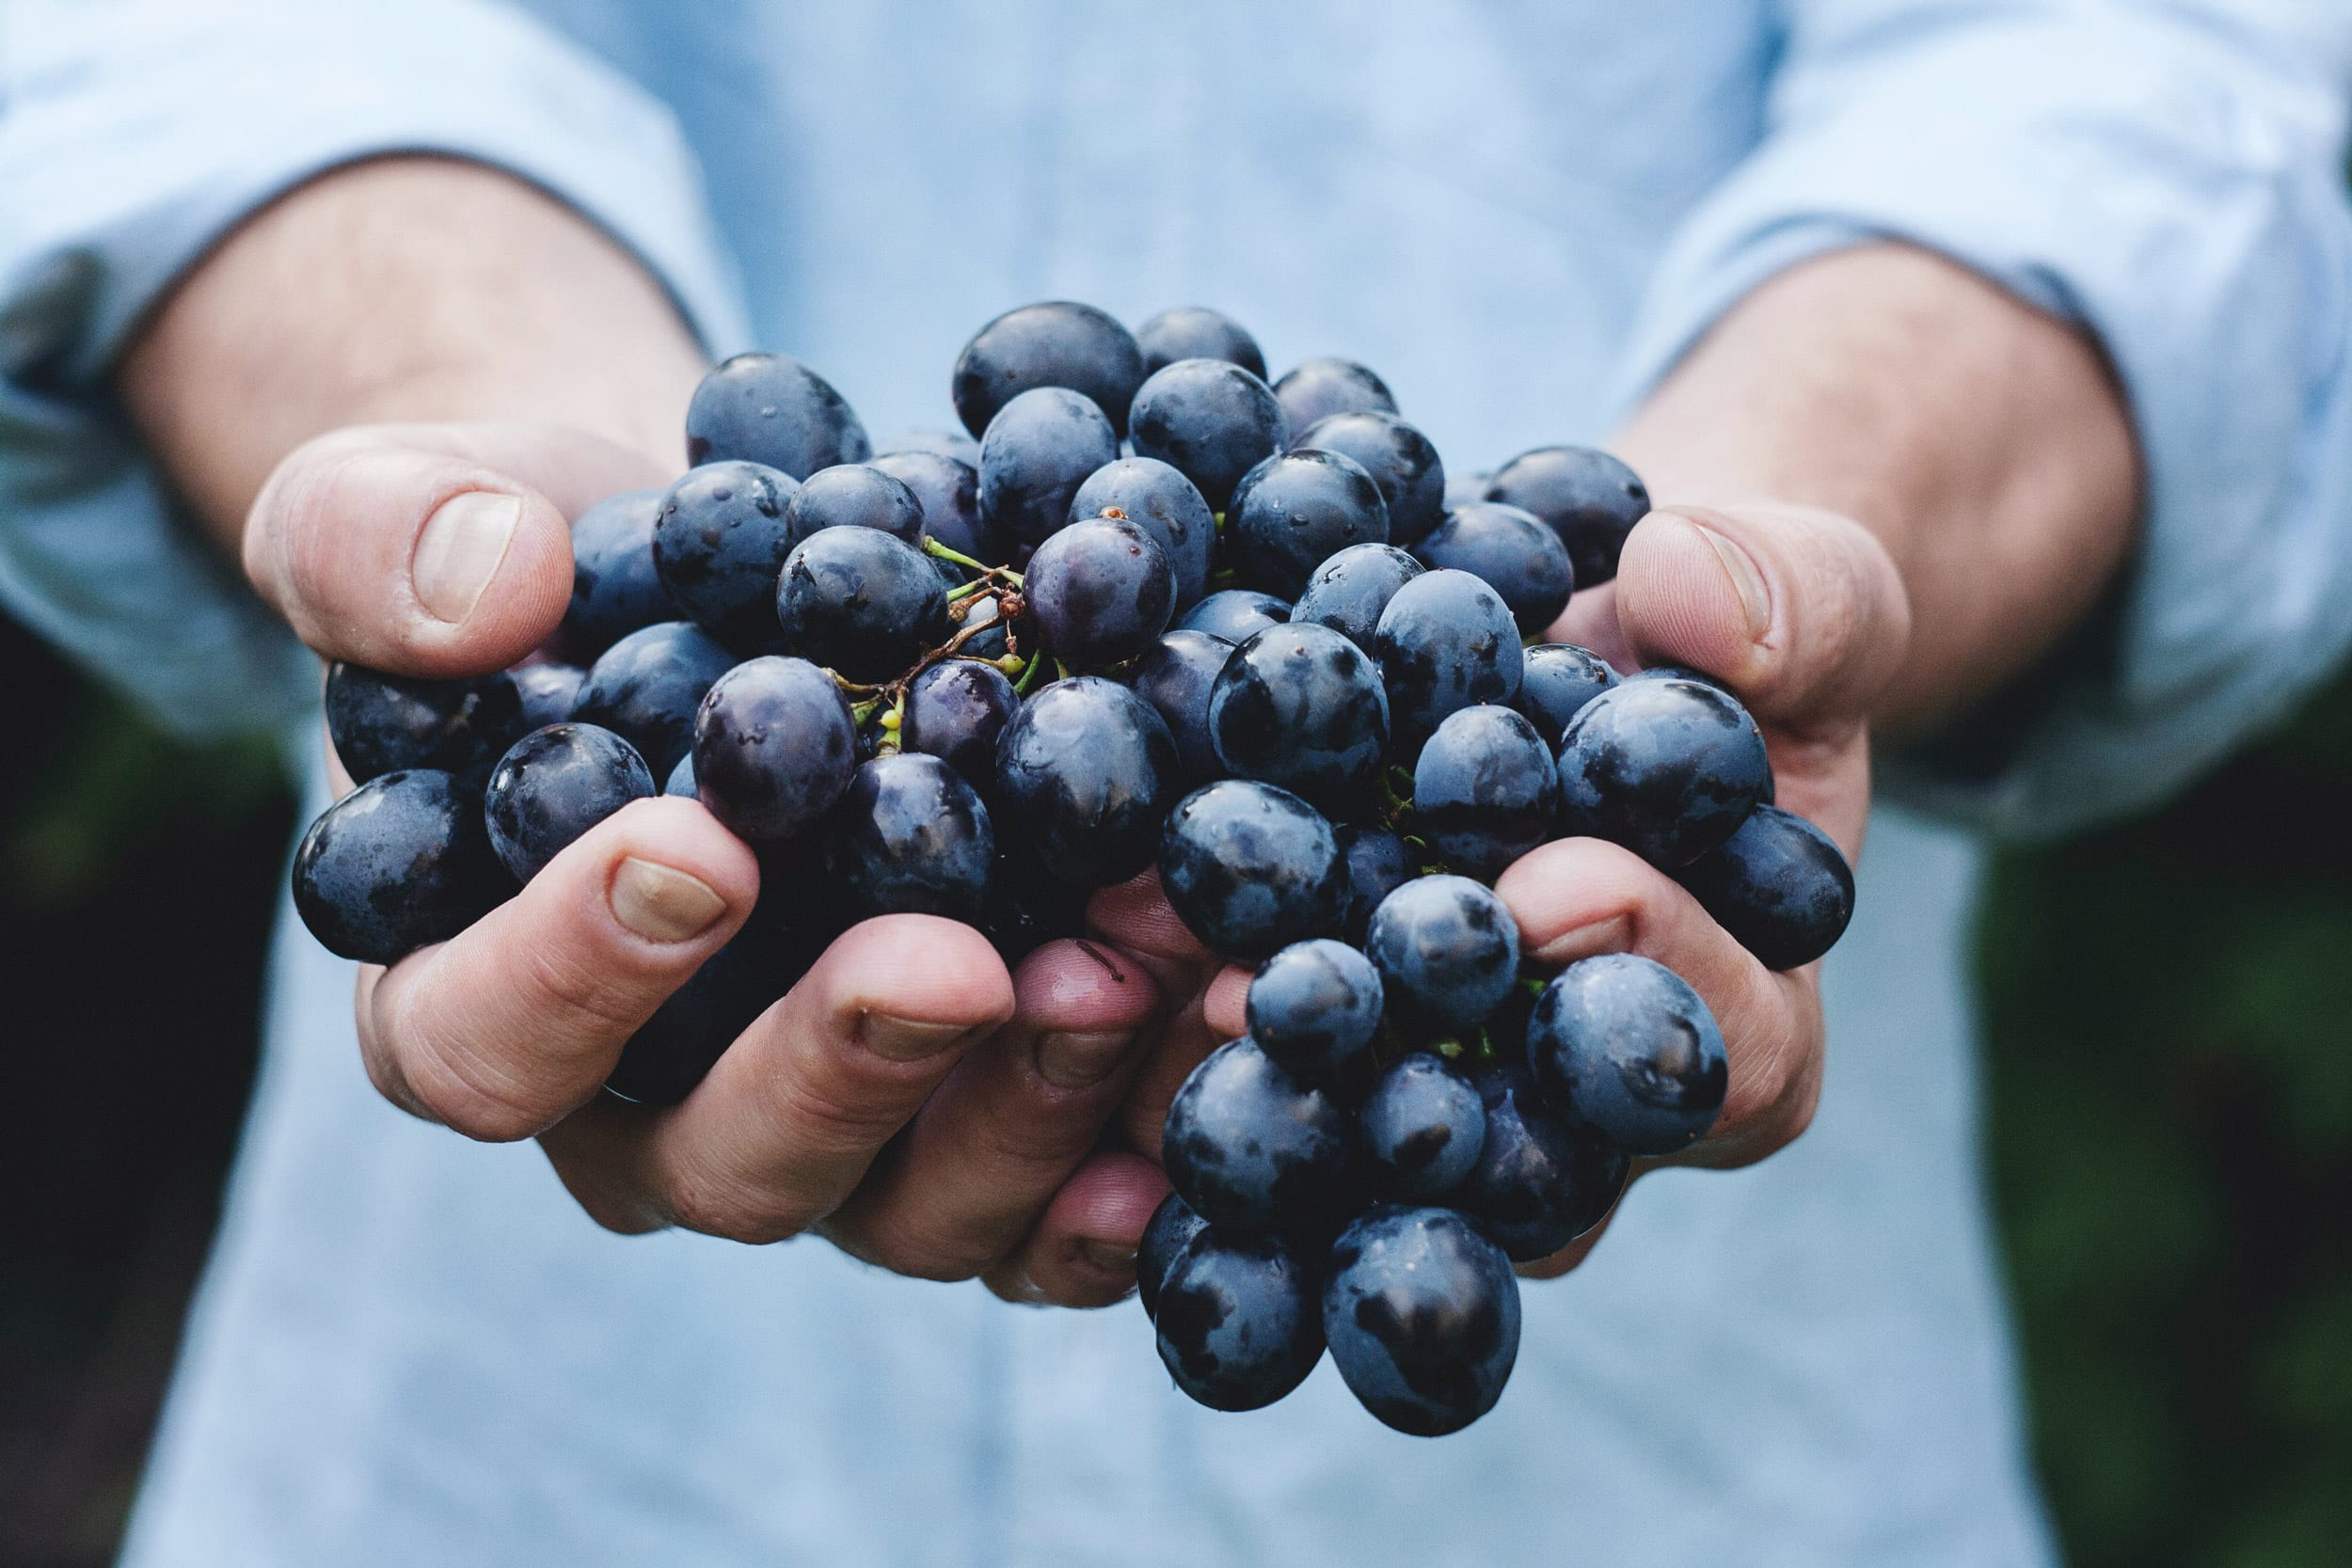 Hands holding bunch of black grapes